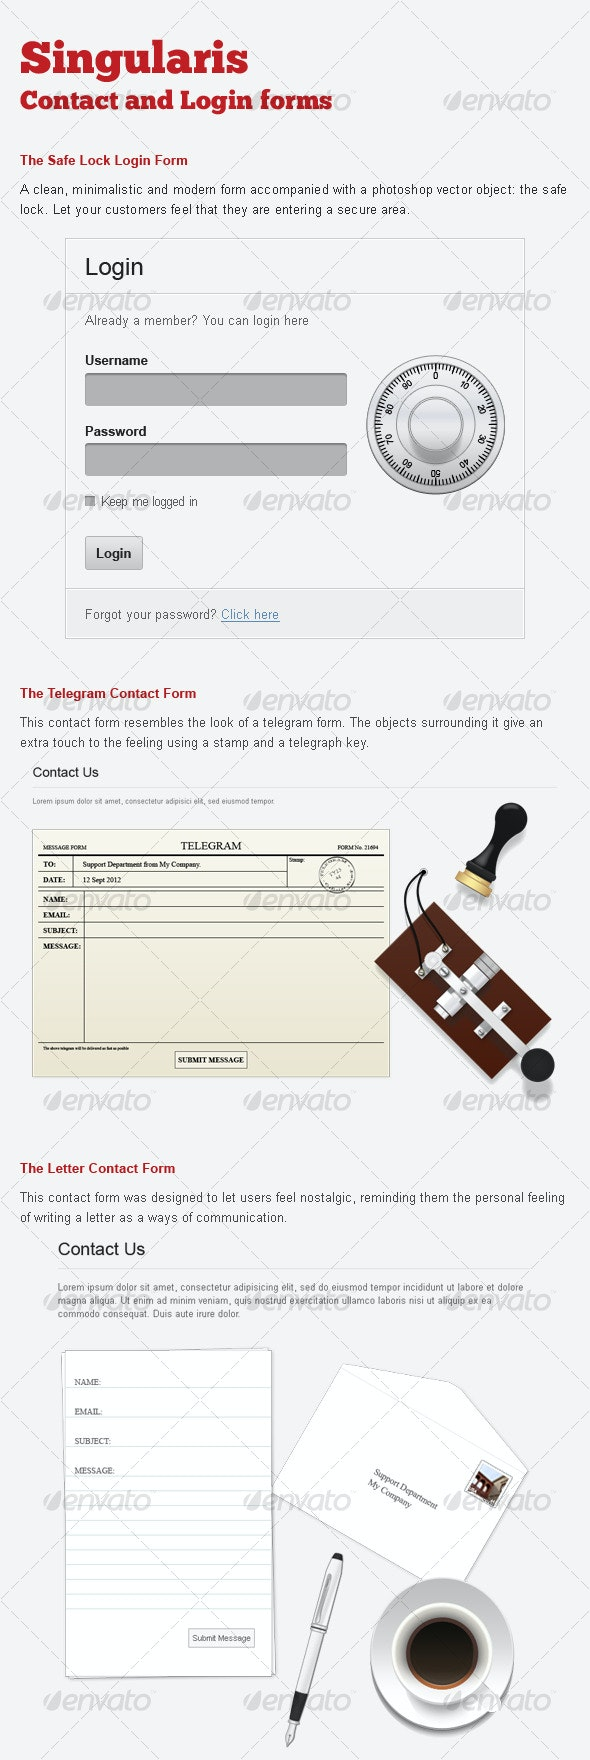 Singularis Webforms Contact Forms and Login Form - Forms Web Elements